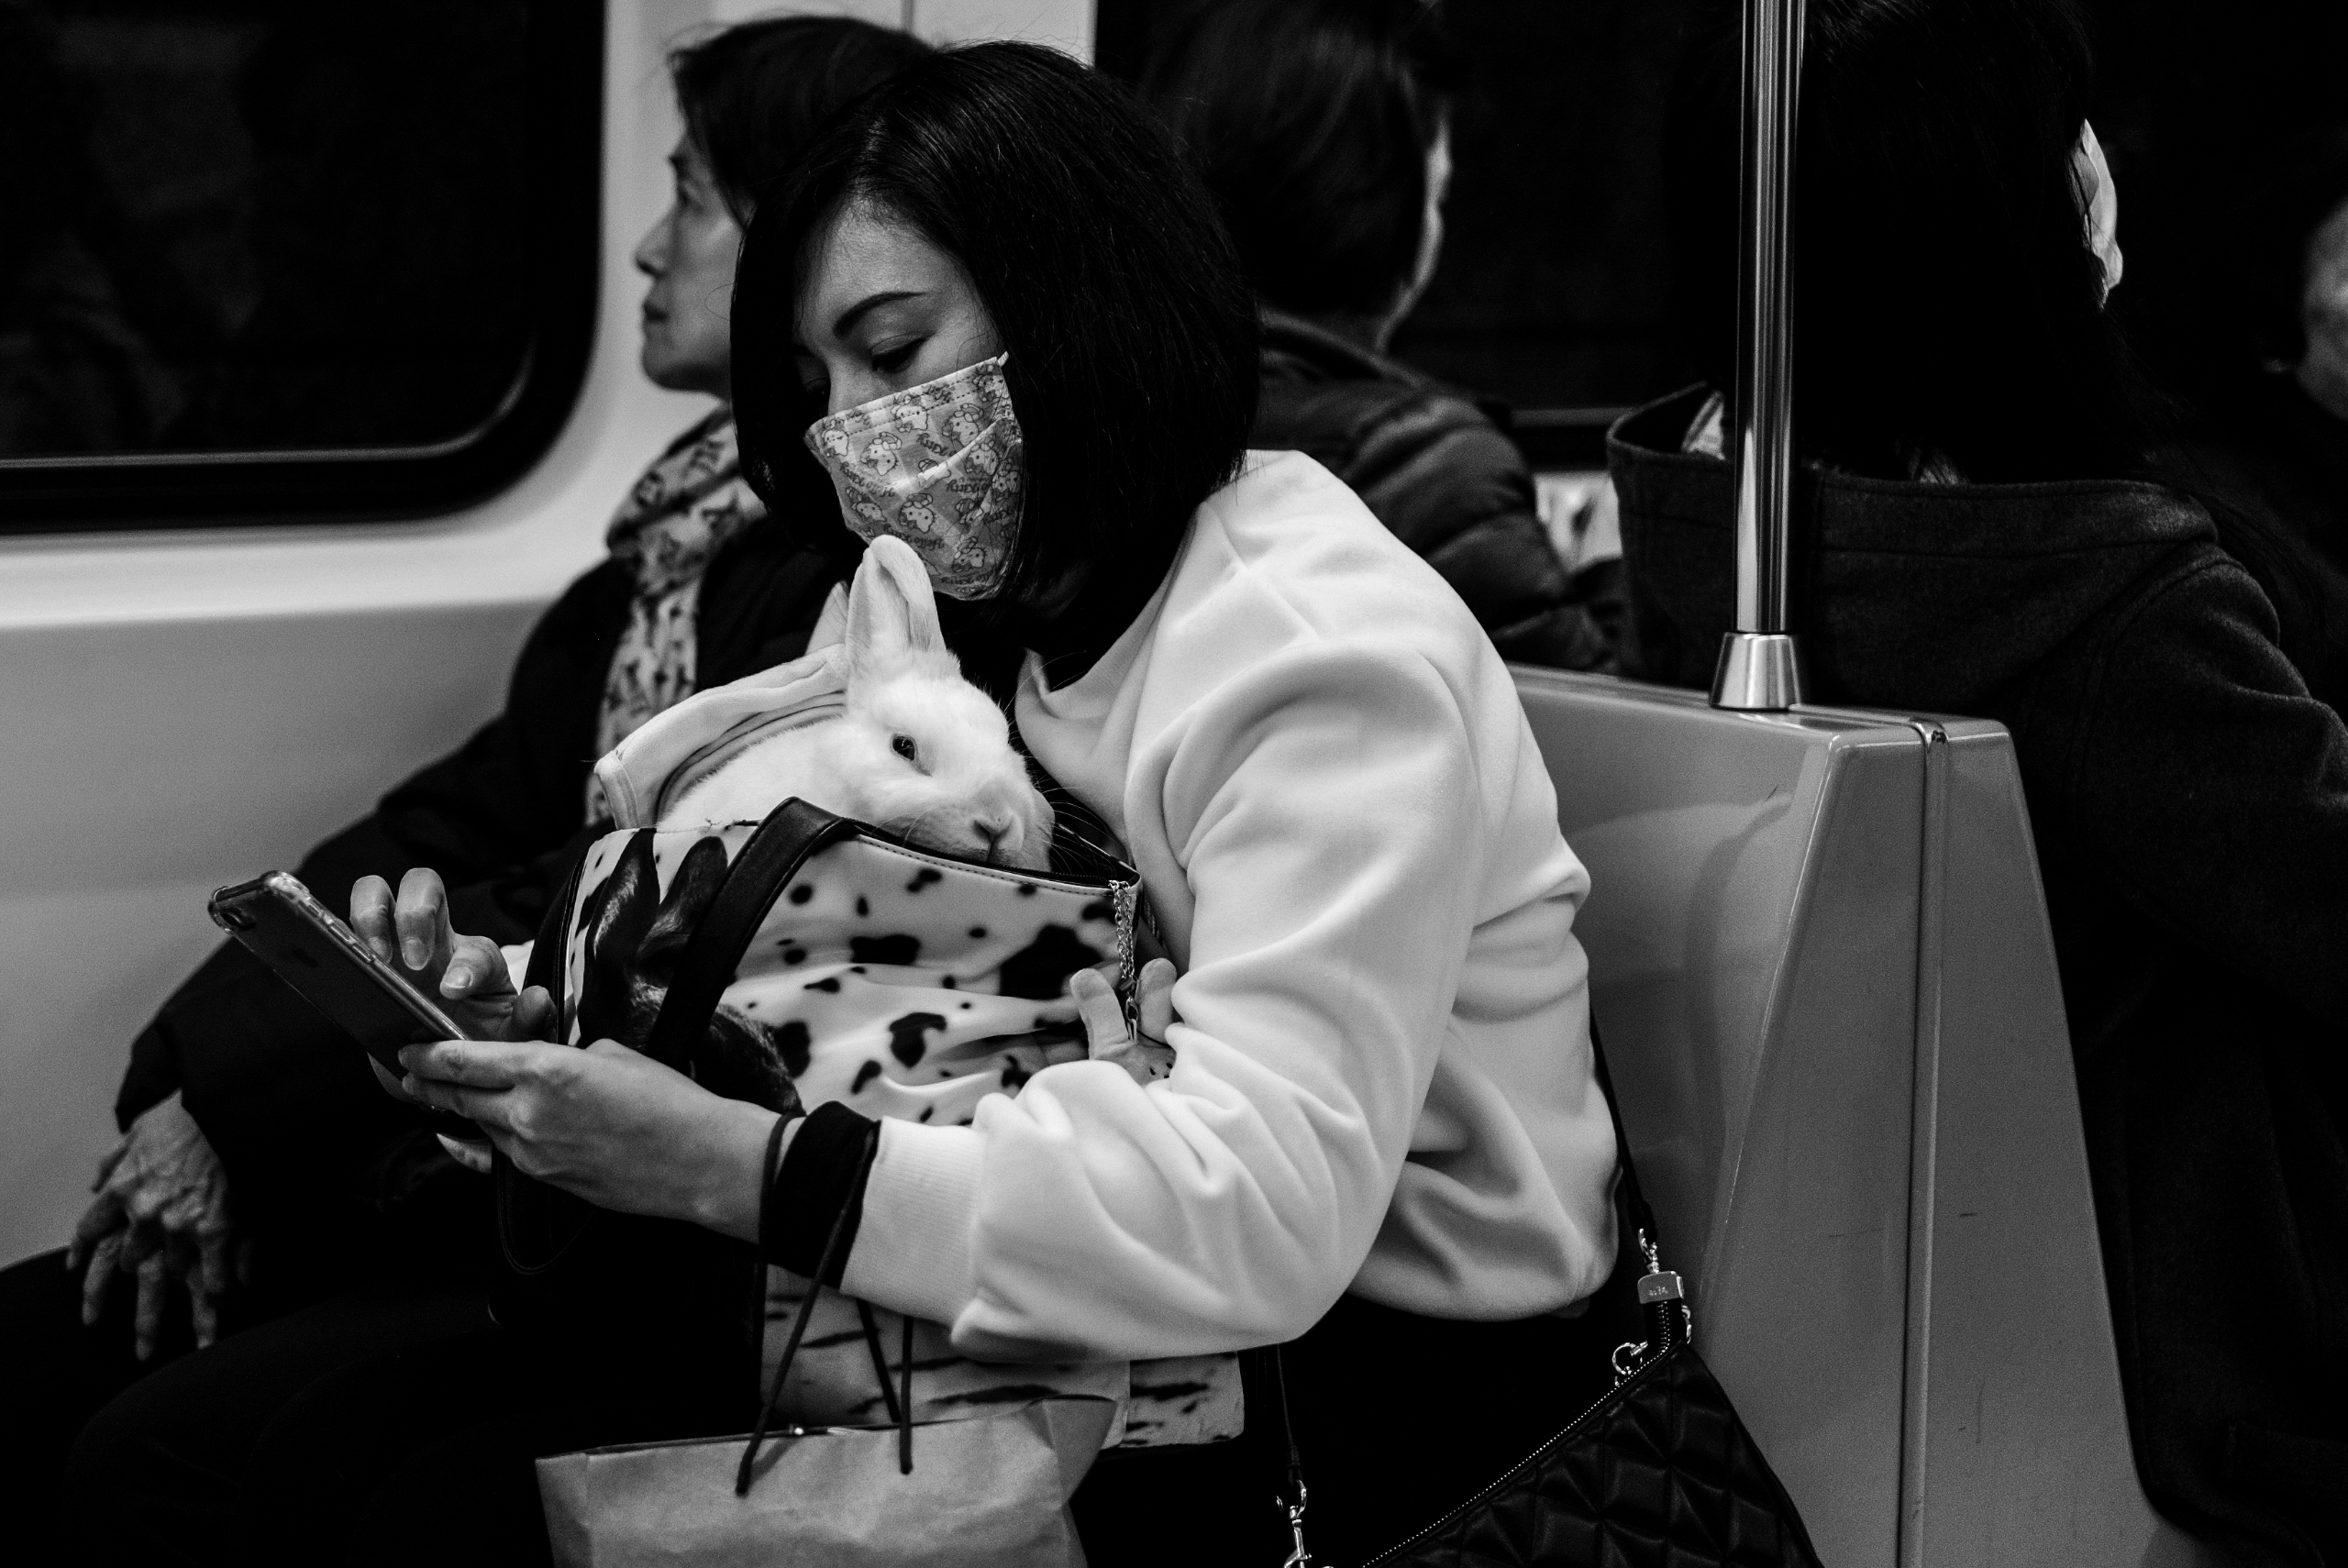 Taipei Metro riders. bunny ride - johnnyg_photography | ello